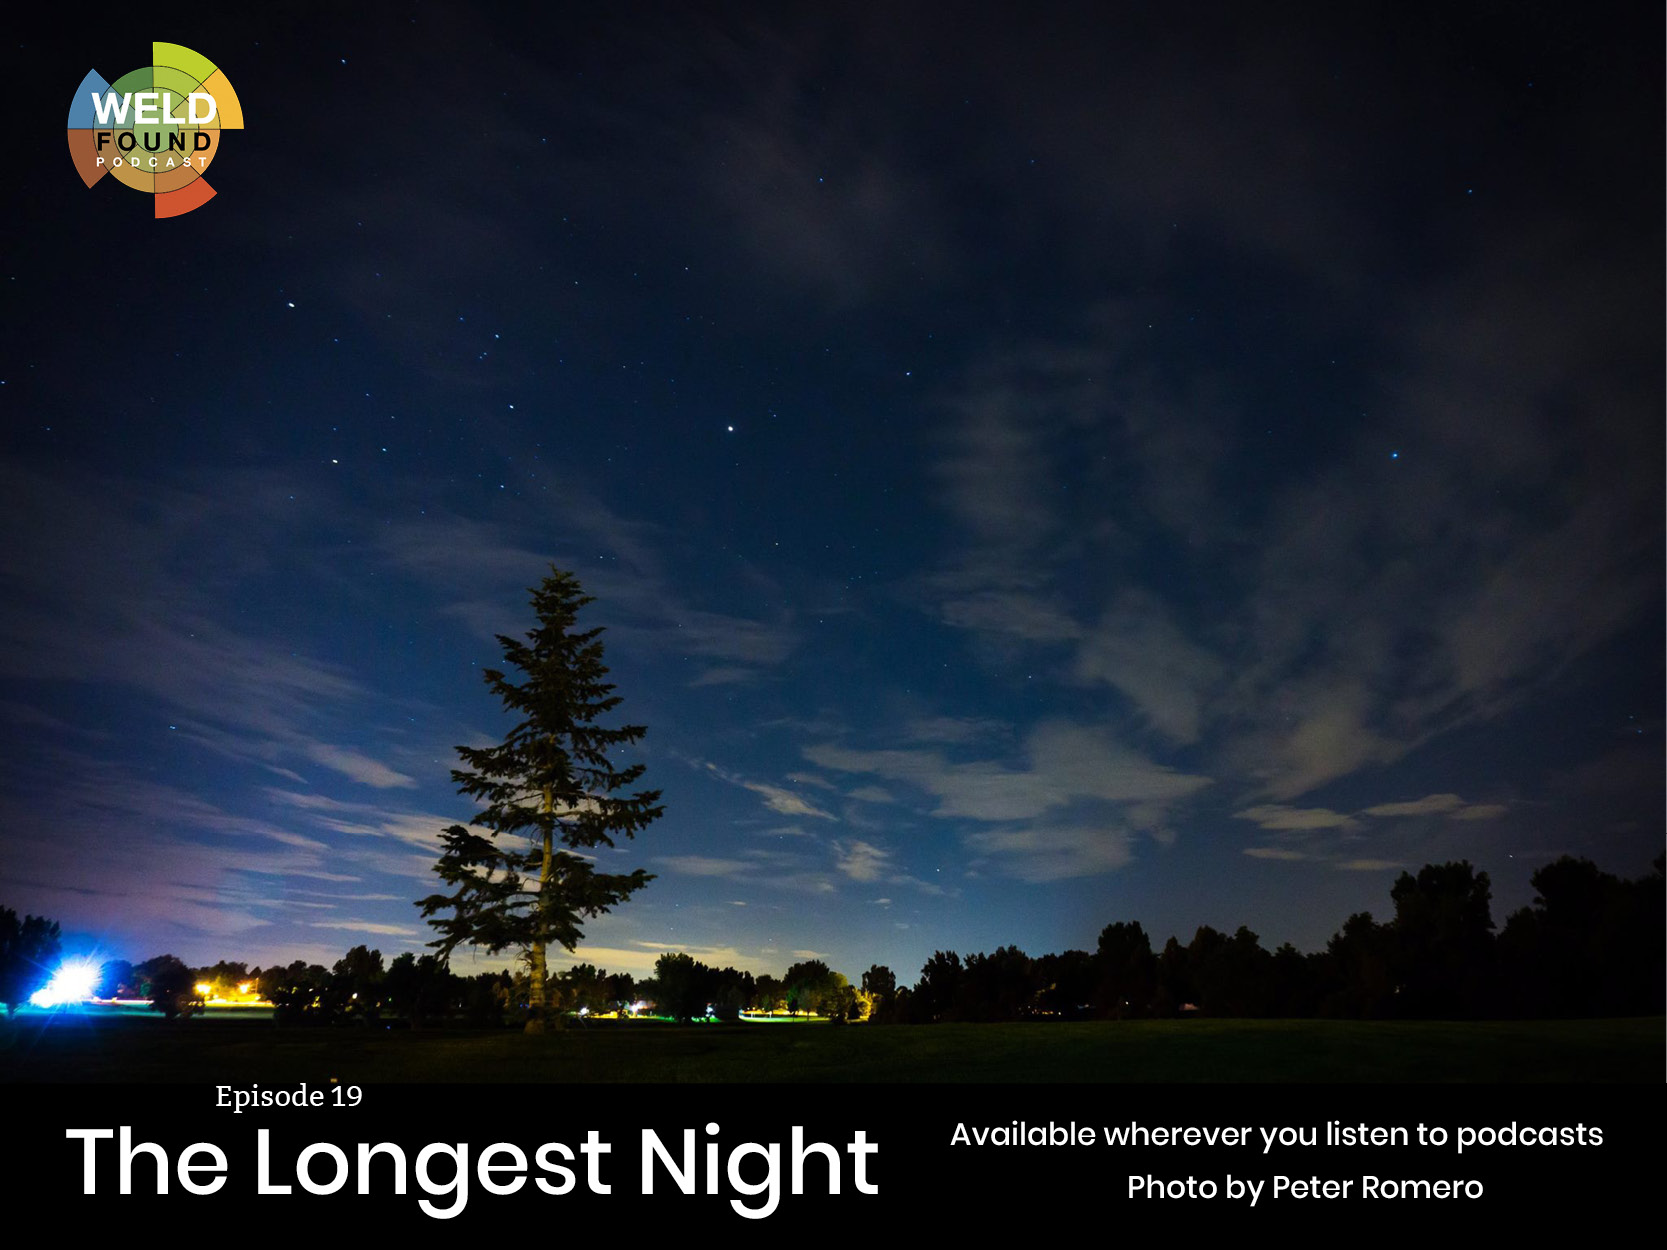 Weld Found Podcast: The Longest Night